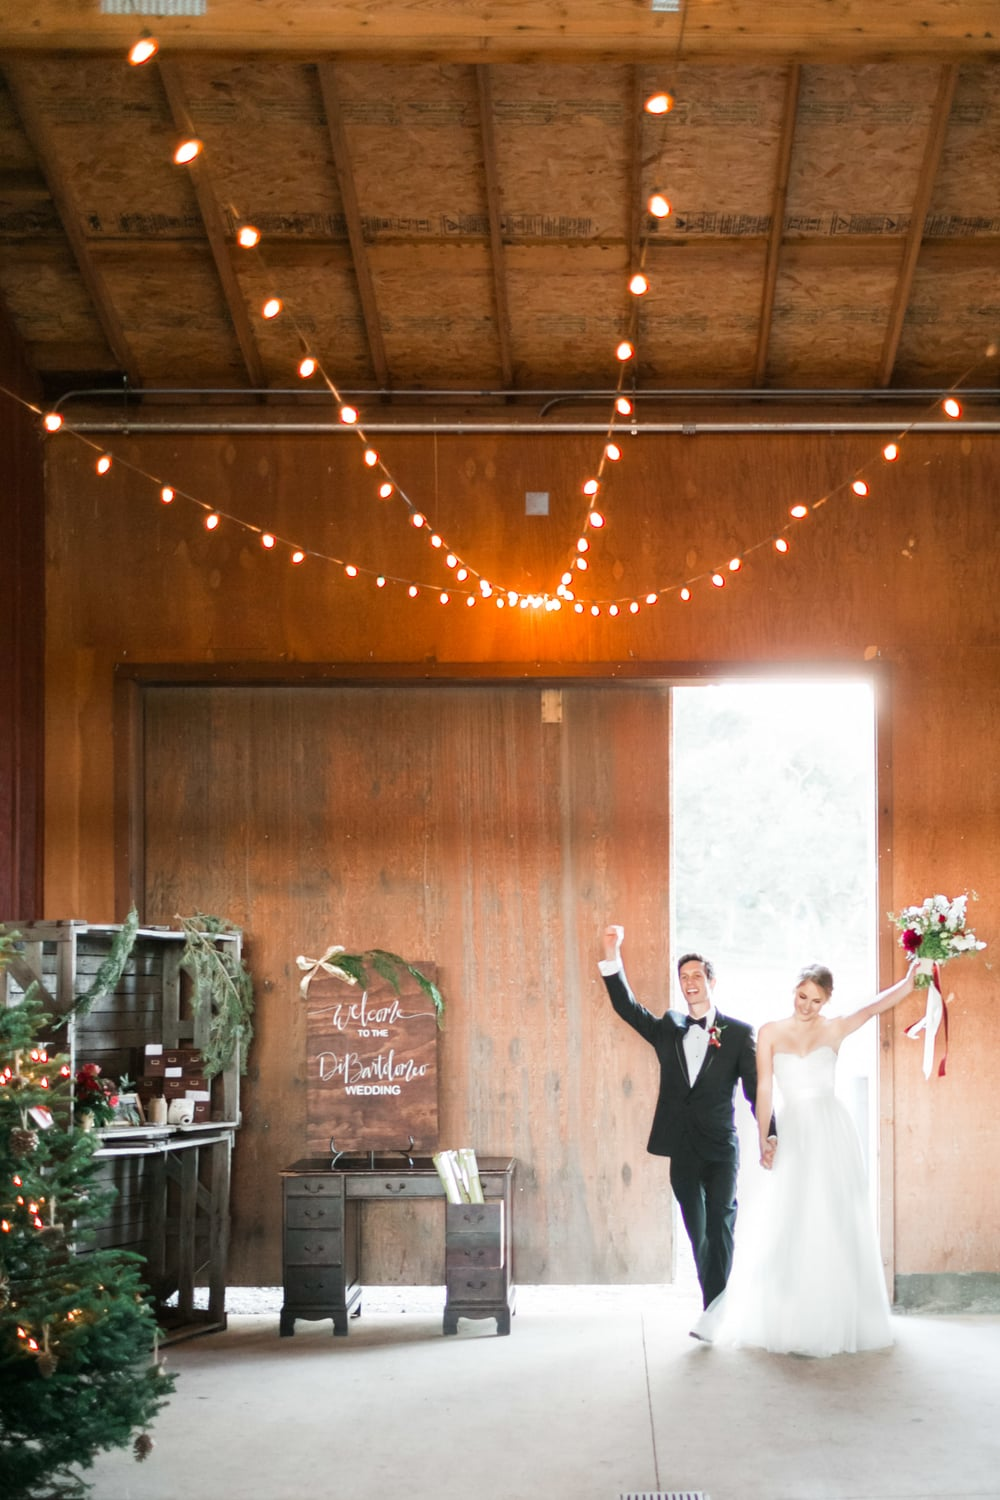 Natalie_Schutt_Photography_Winter_Wedding_San_Luis_Obispo-202.jpg